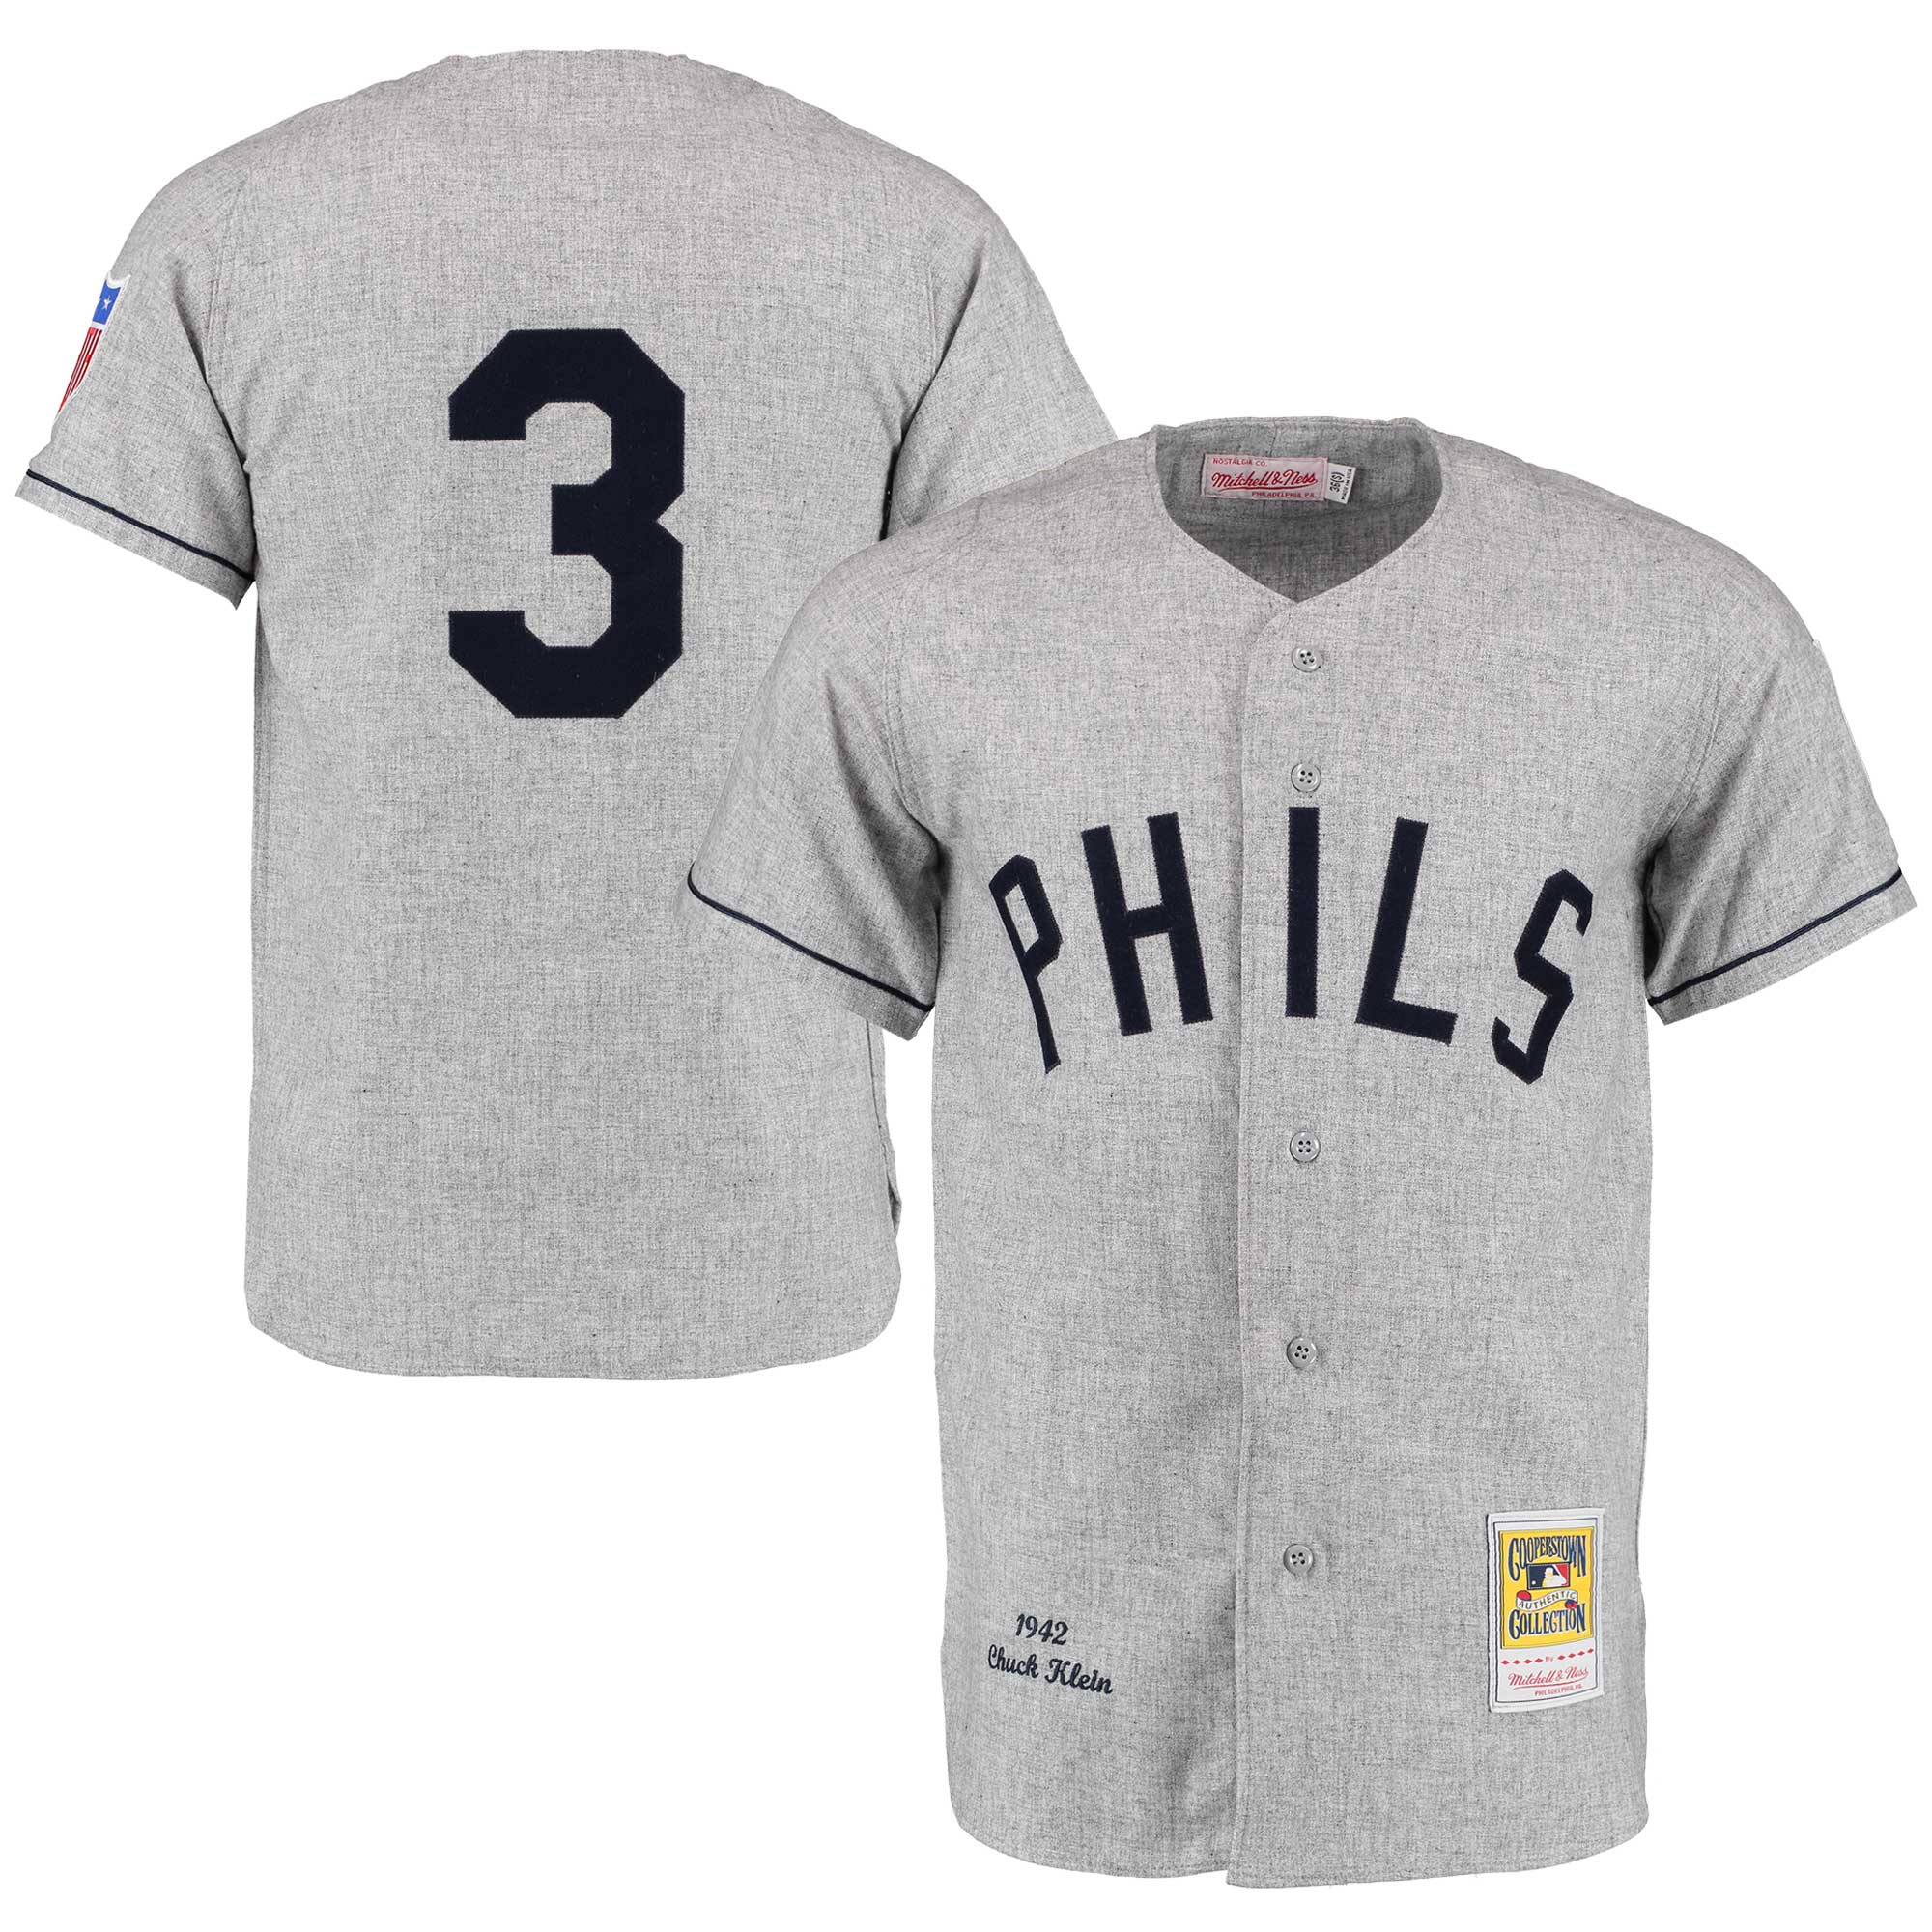 Chuck Klein 1942 Philadelphia Phillies Mitchell & Ness Authentic Throwback Jersey - Gray